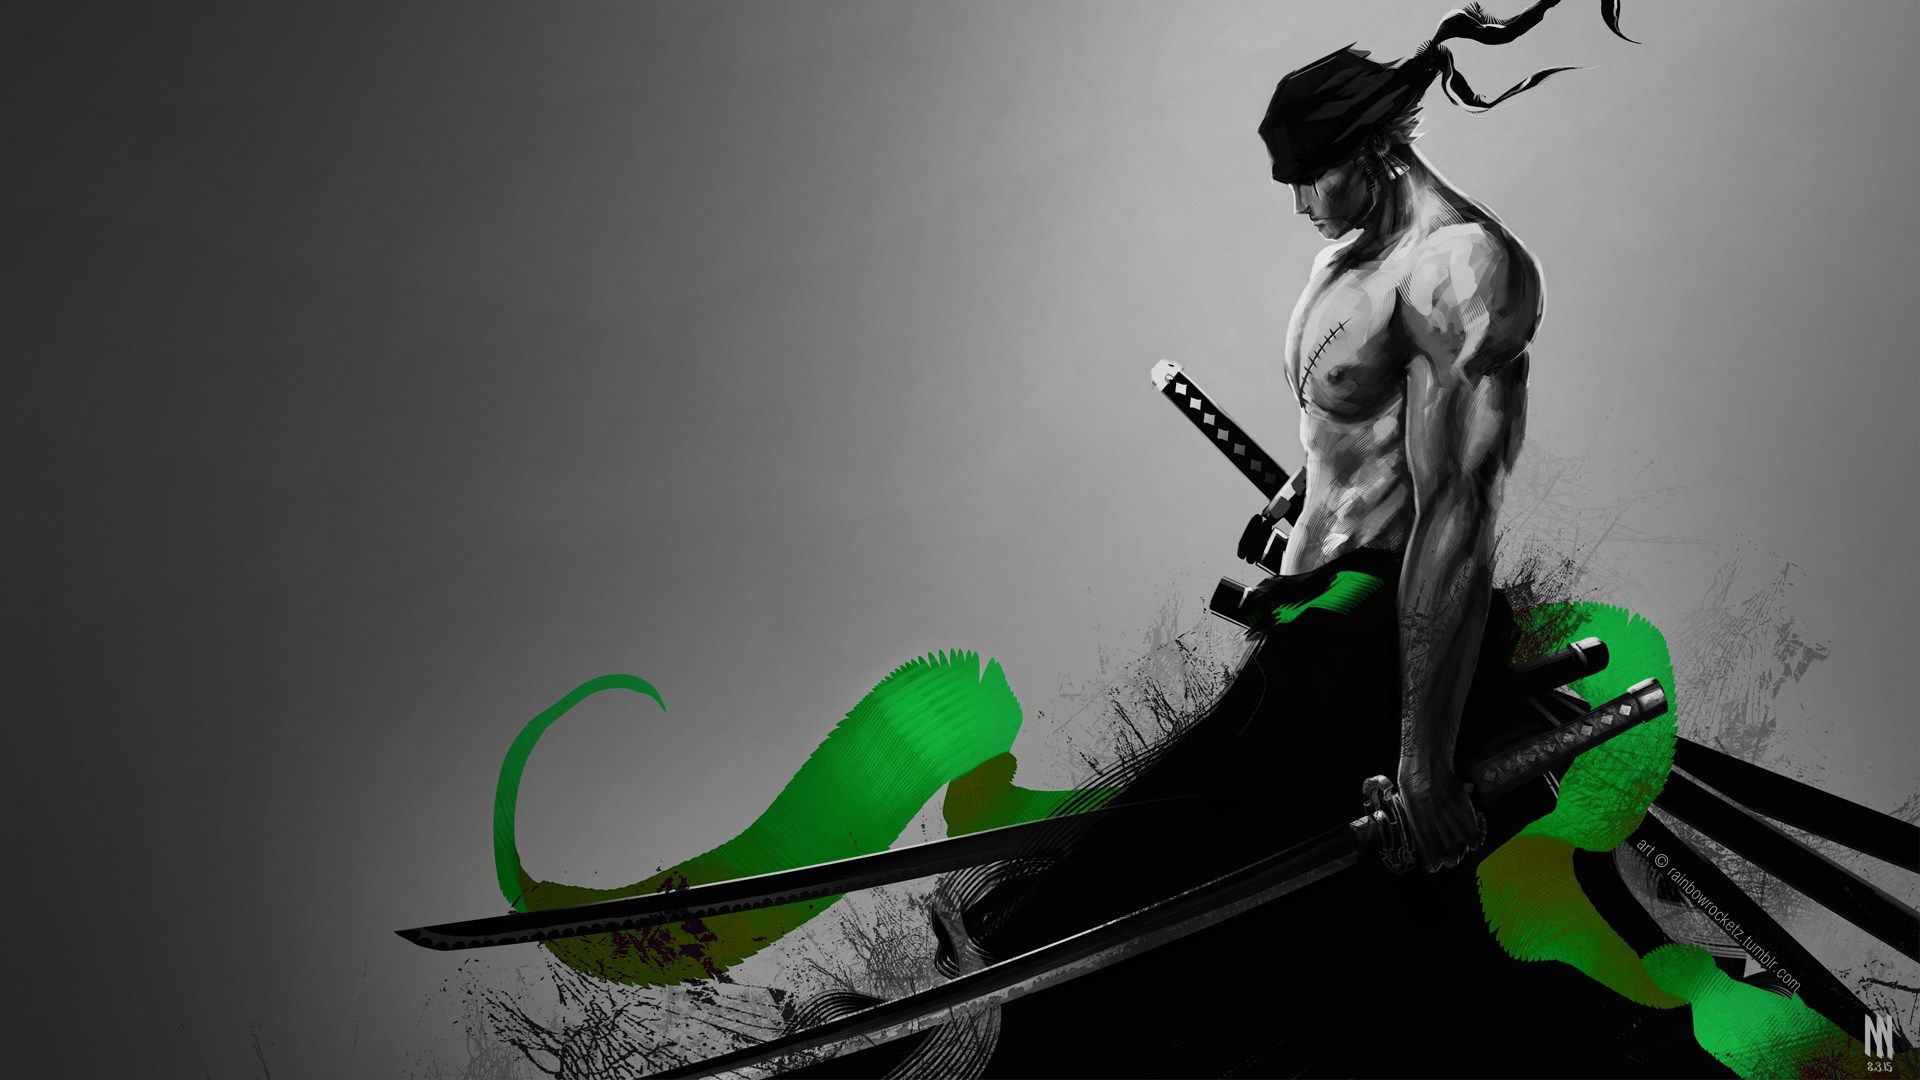 One Piece Zoro Wallpapers Iphone For Desktop Background